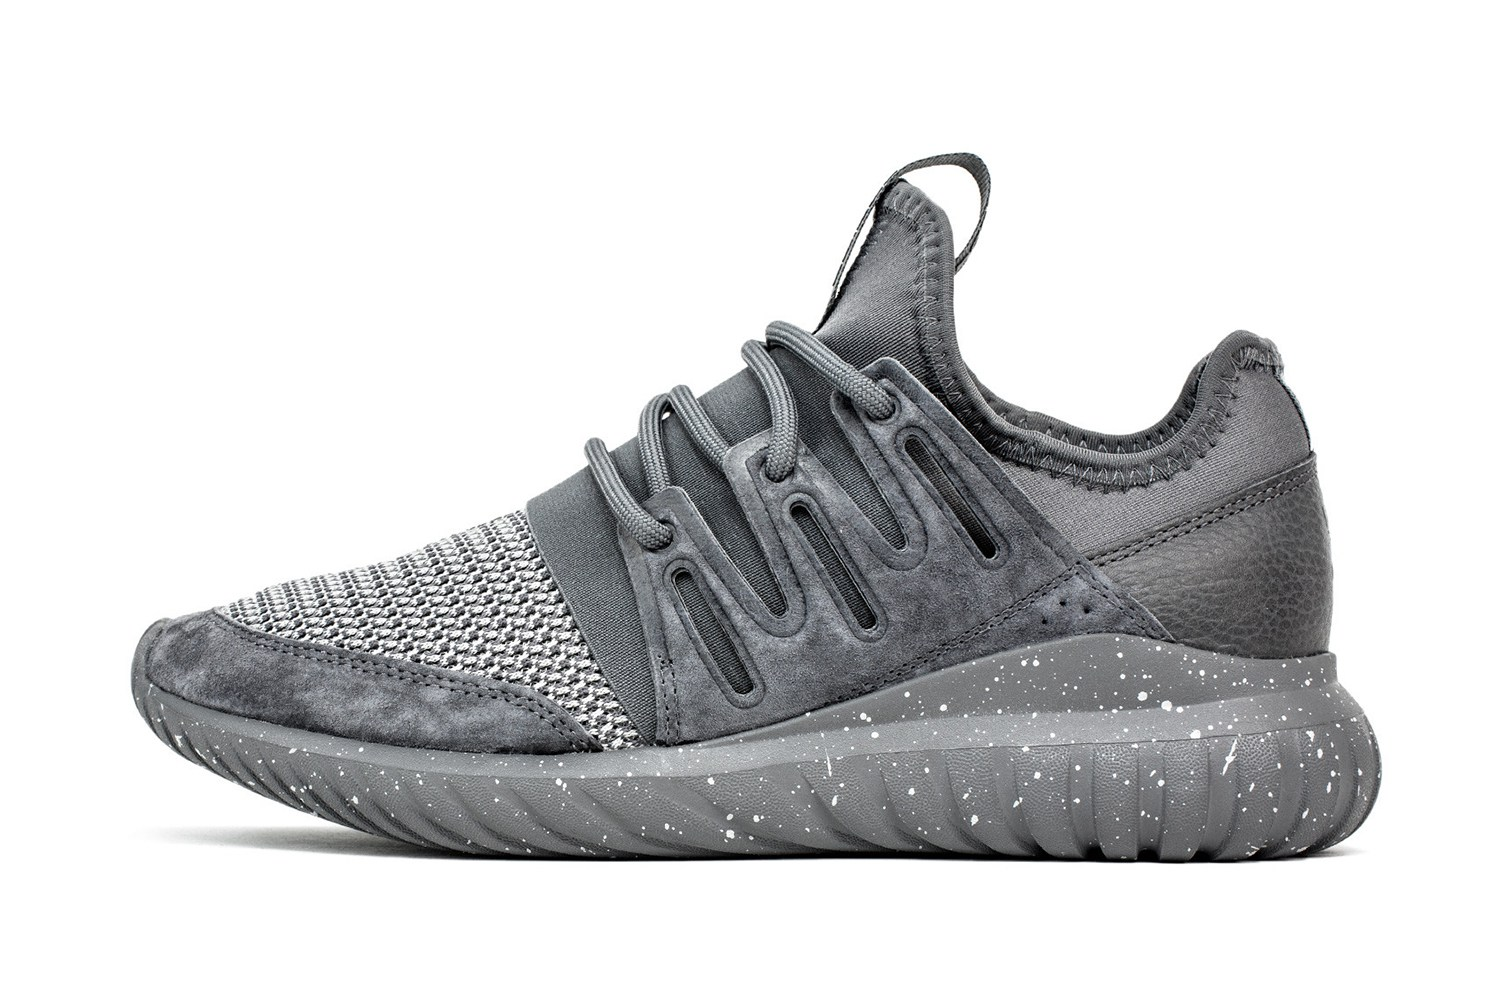 c4cc1e58ae5757 It s the grey sneaker. I have lots of red and I have lots of grey. Not even  my favorite colors.